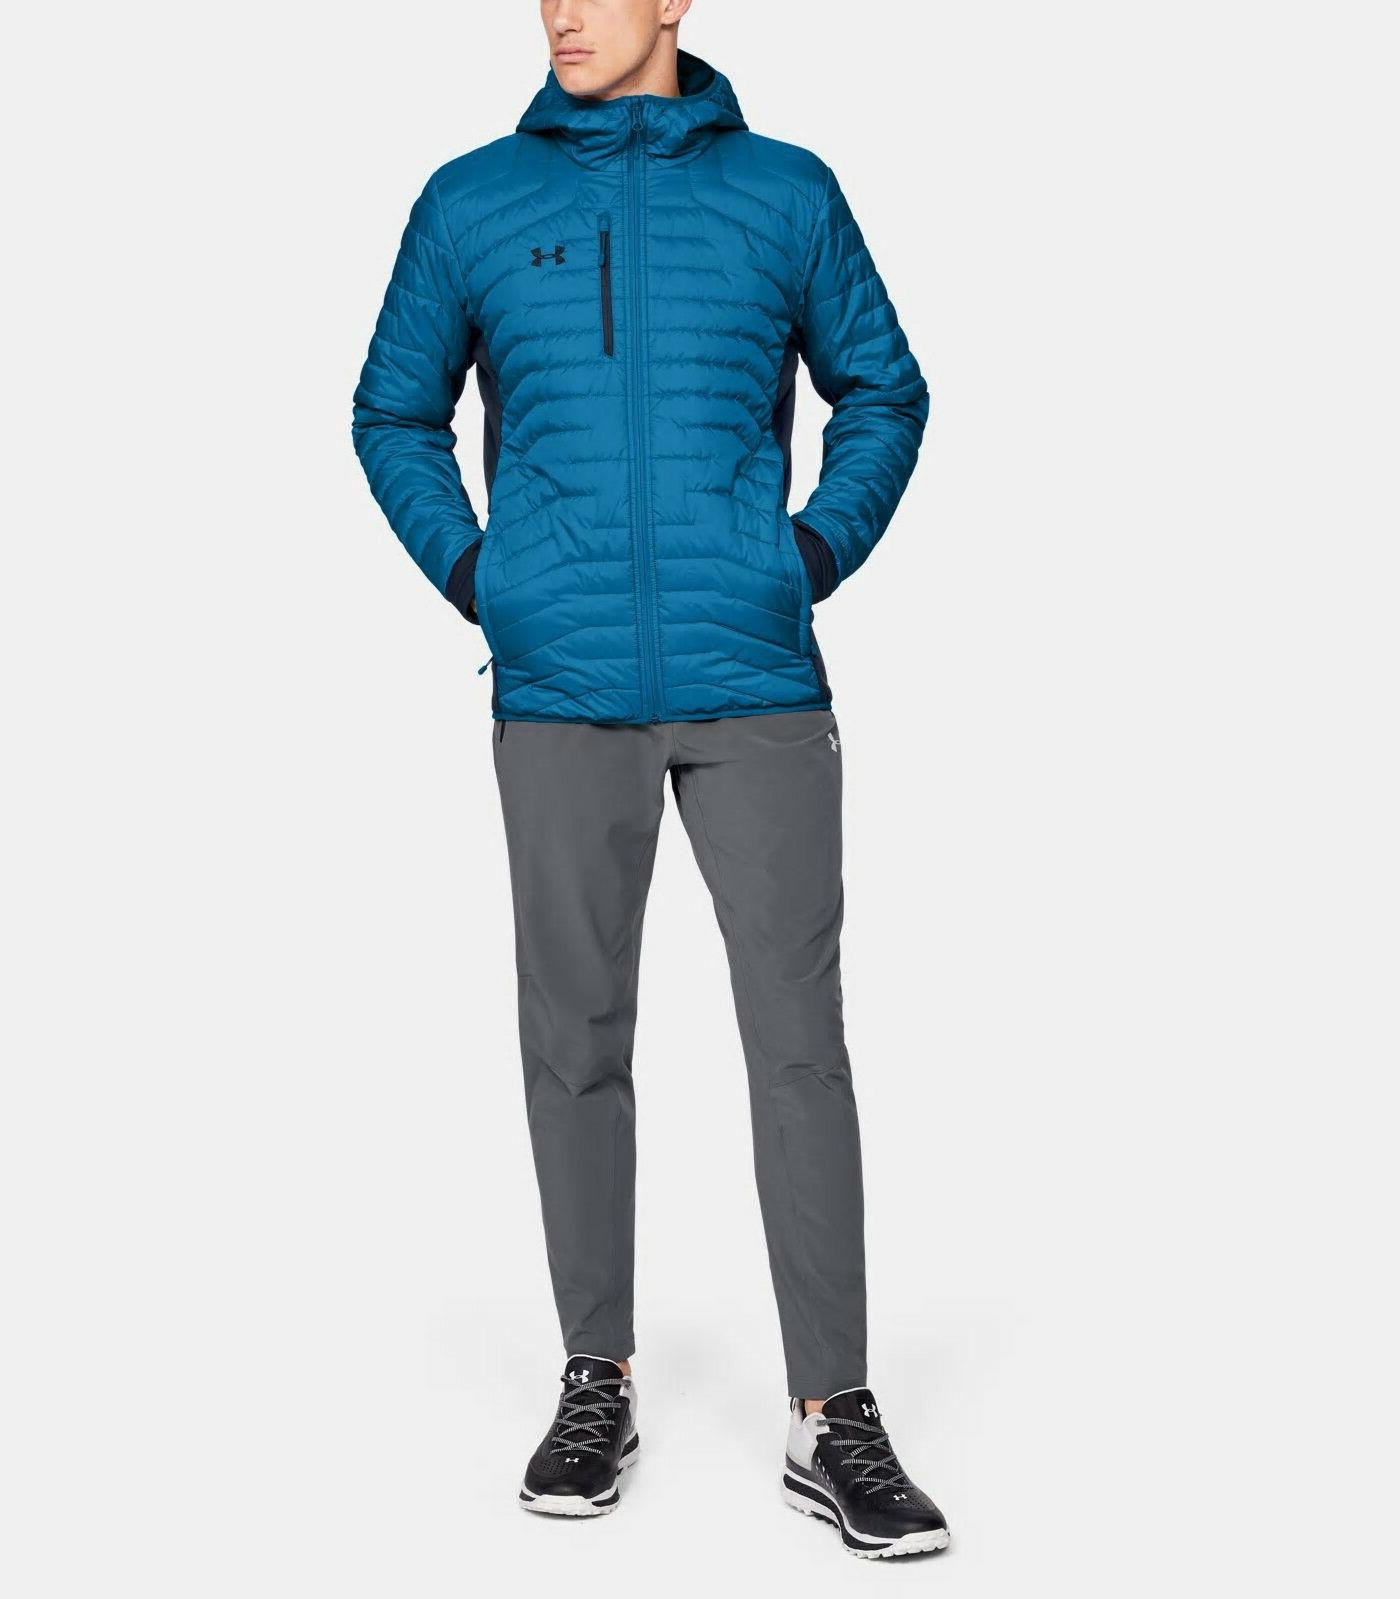 NEW ARMOUR Men's XL ColdGear Hybrid Hooded Insulated